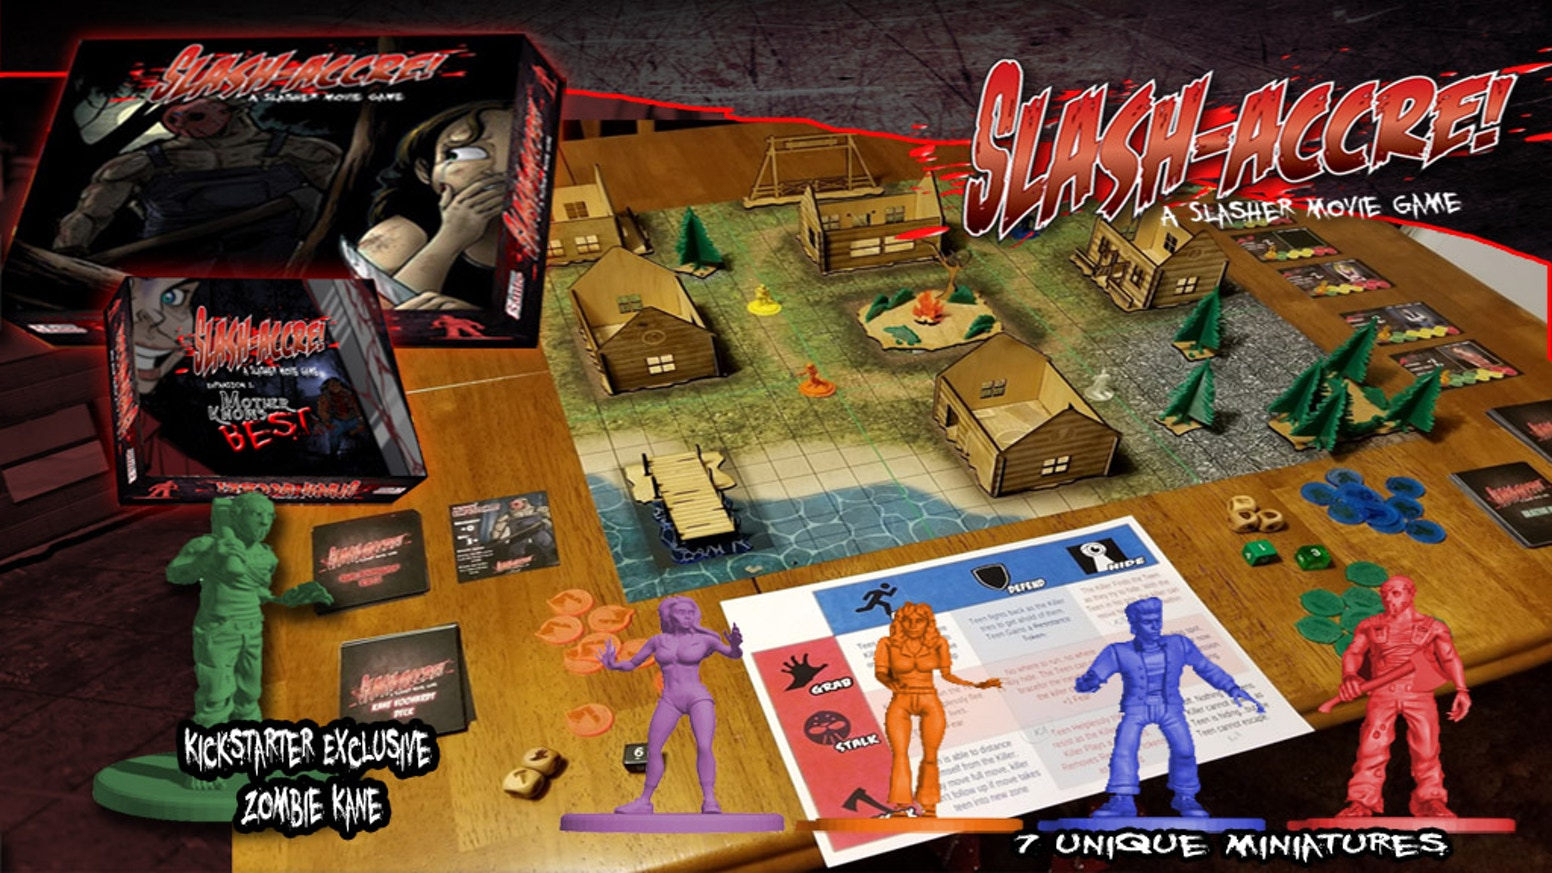 A Horror-Themed Miniature/Board Game Based on 1980's SLASHER Films